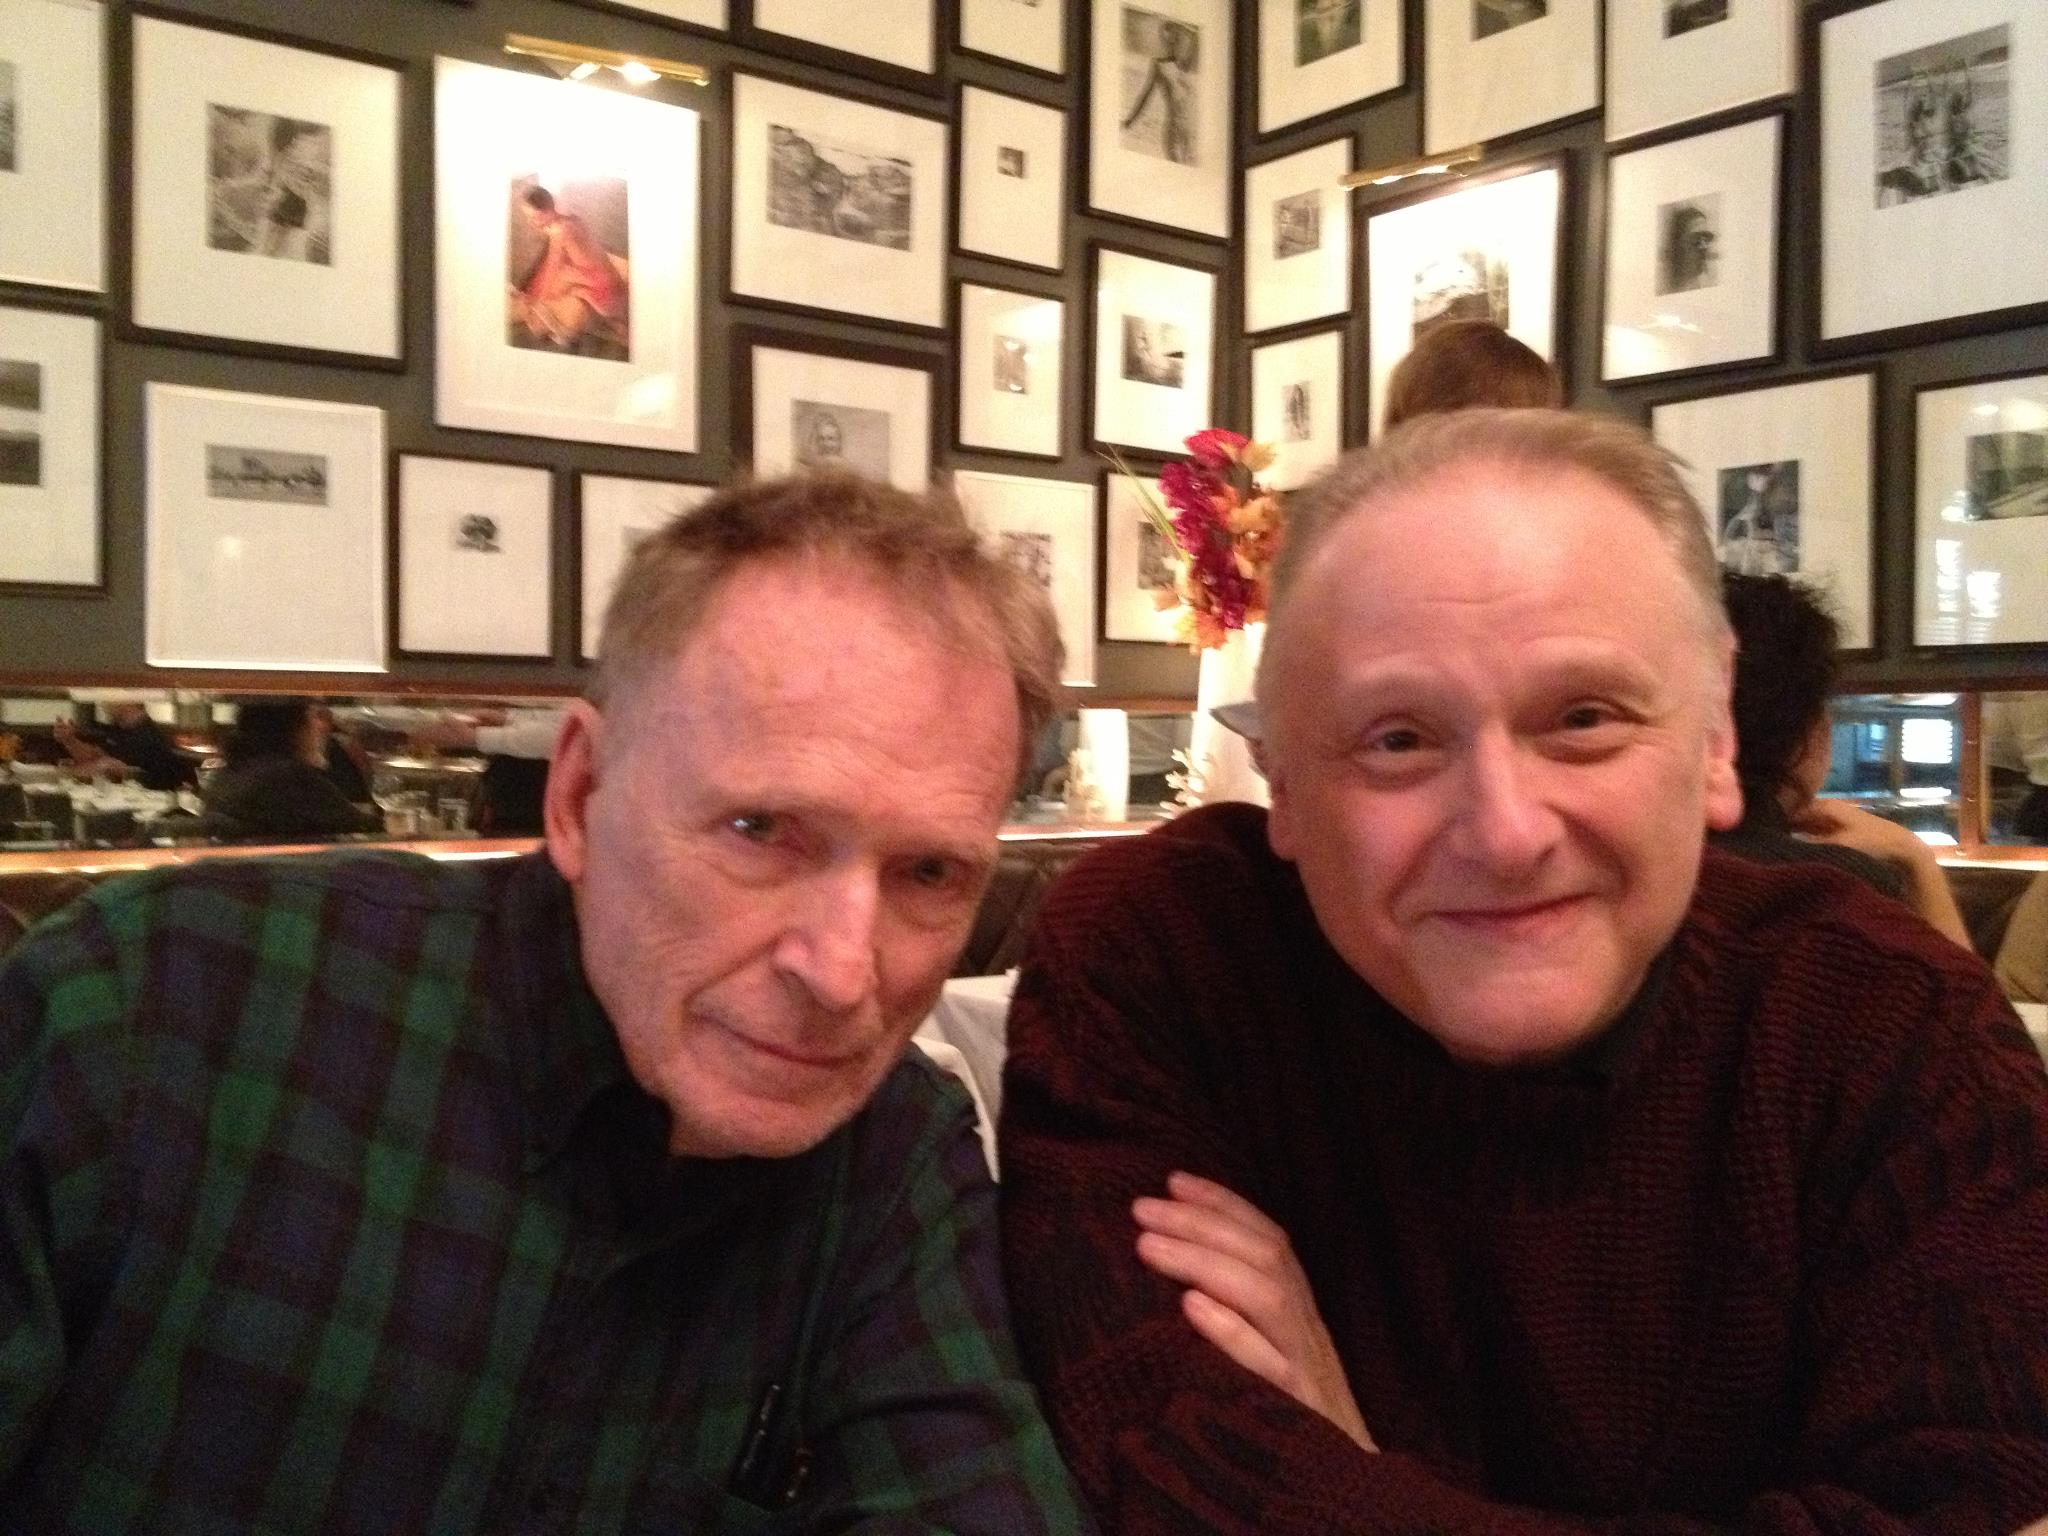 Lunch with Dick Cavett... Pretty amazing....